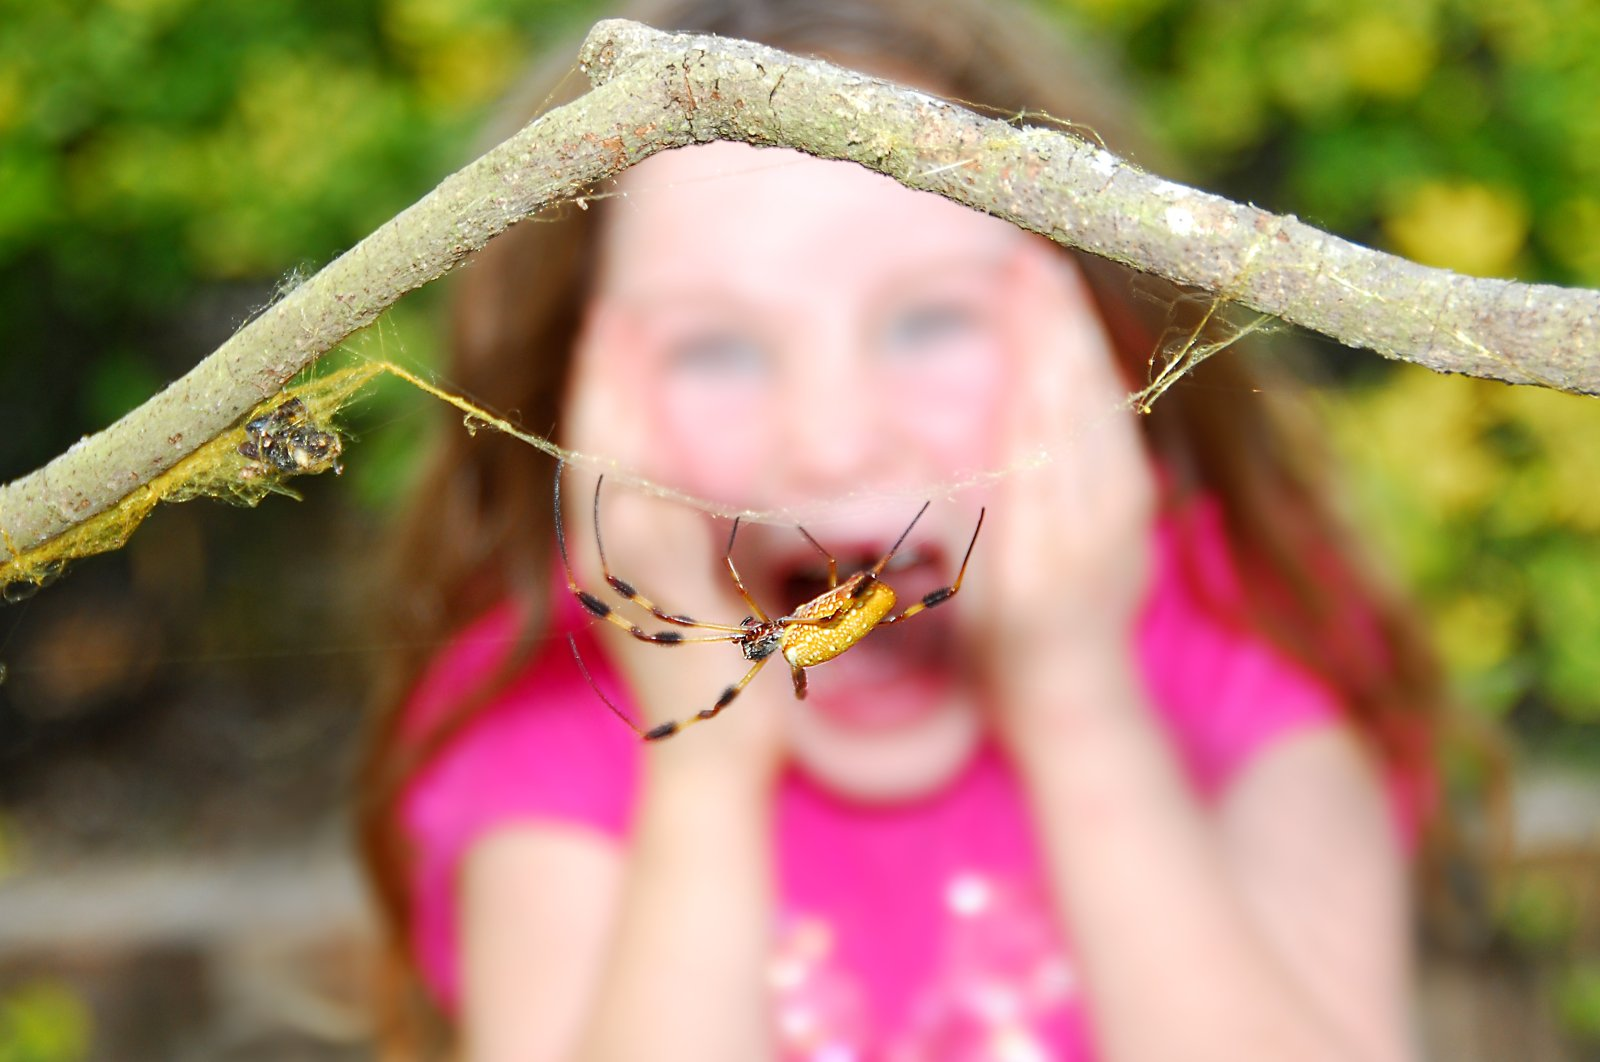 In the case of a phobia, the decisive factor is not how dangerous something actually is, but how dangerous the amygdala – a primitive part of the brain – thinks it is. (Shutterstock Photo)